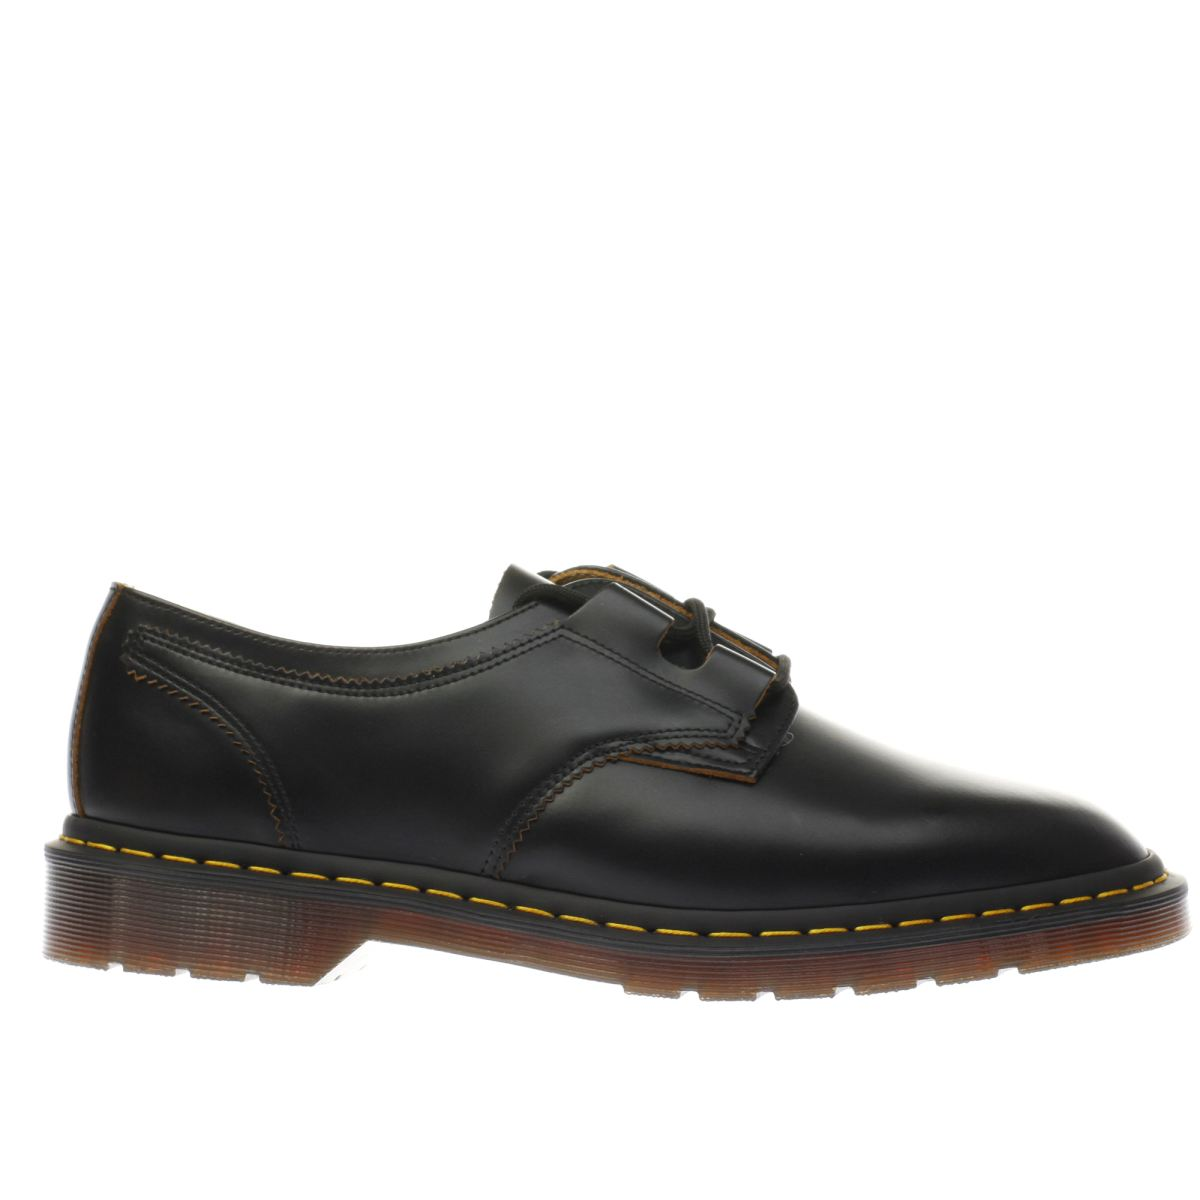 dr martens black 1461 ghille shoes